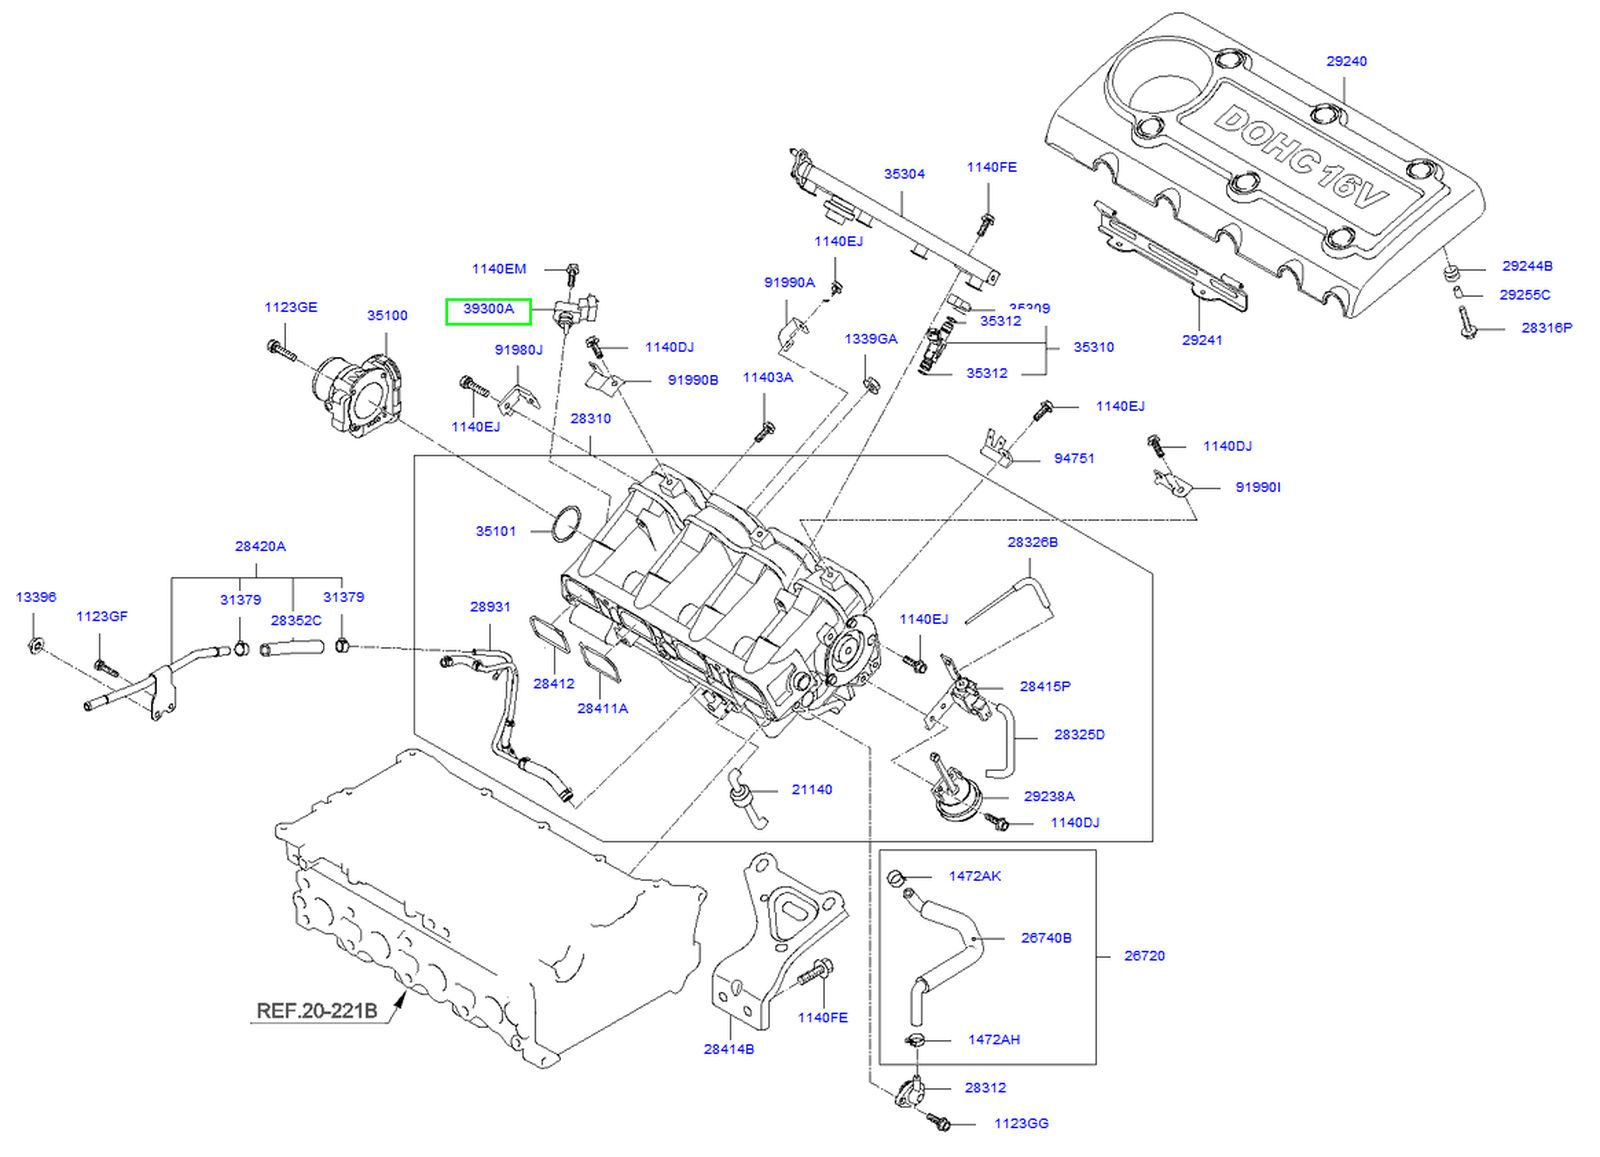 2003 Kium Sorento Lx Engine Diagram